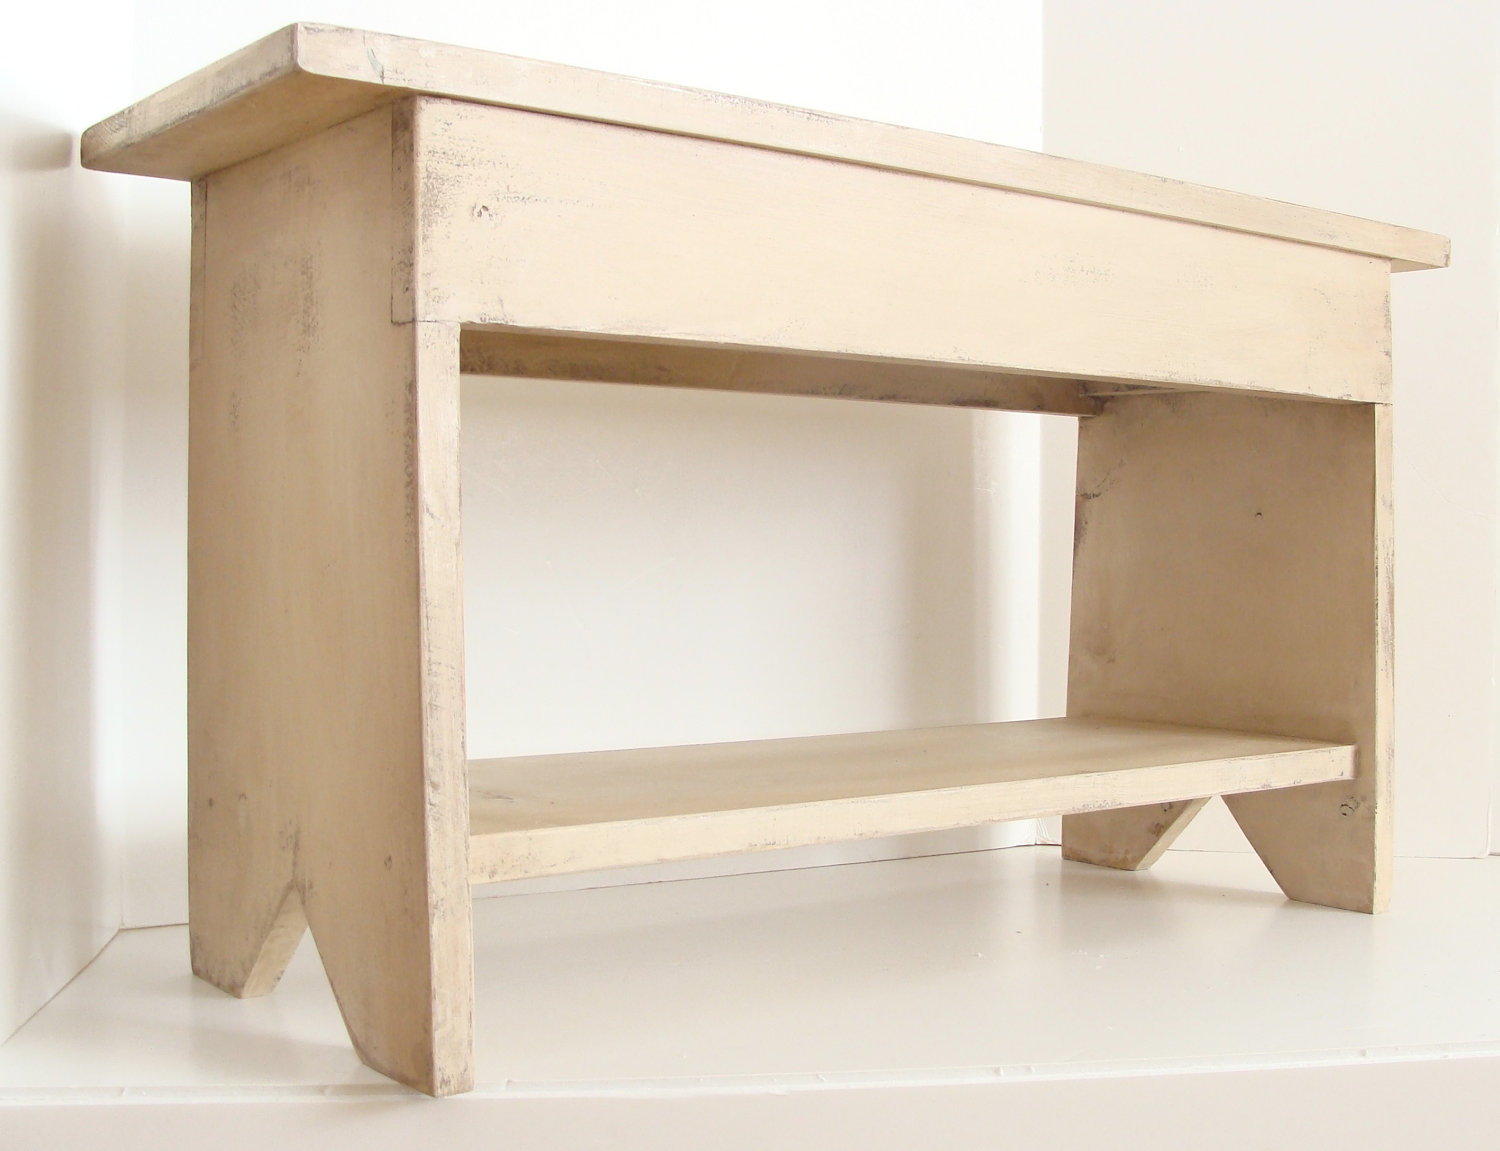 Fascinating Small Bathroom Storage Bench Target Keter regarding dimensions 1500 X 1151